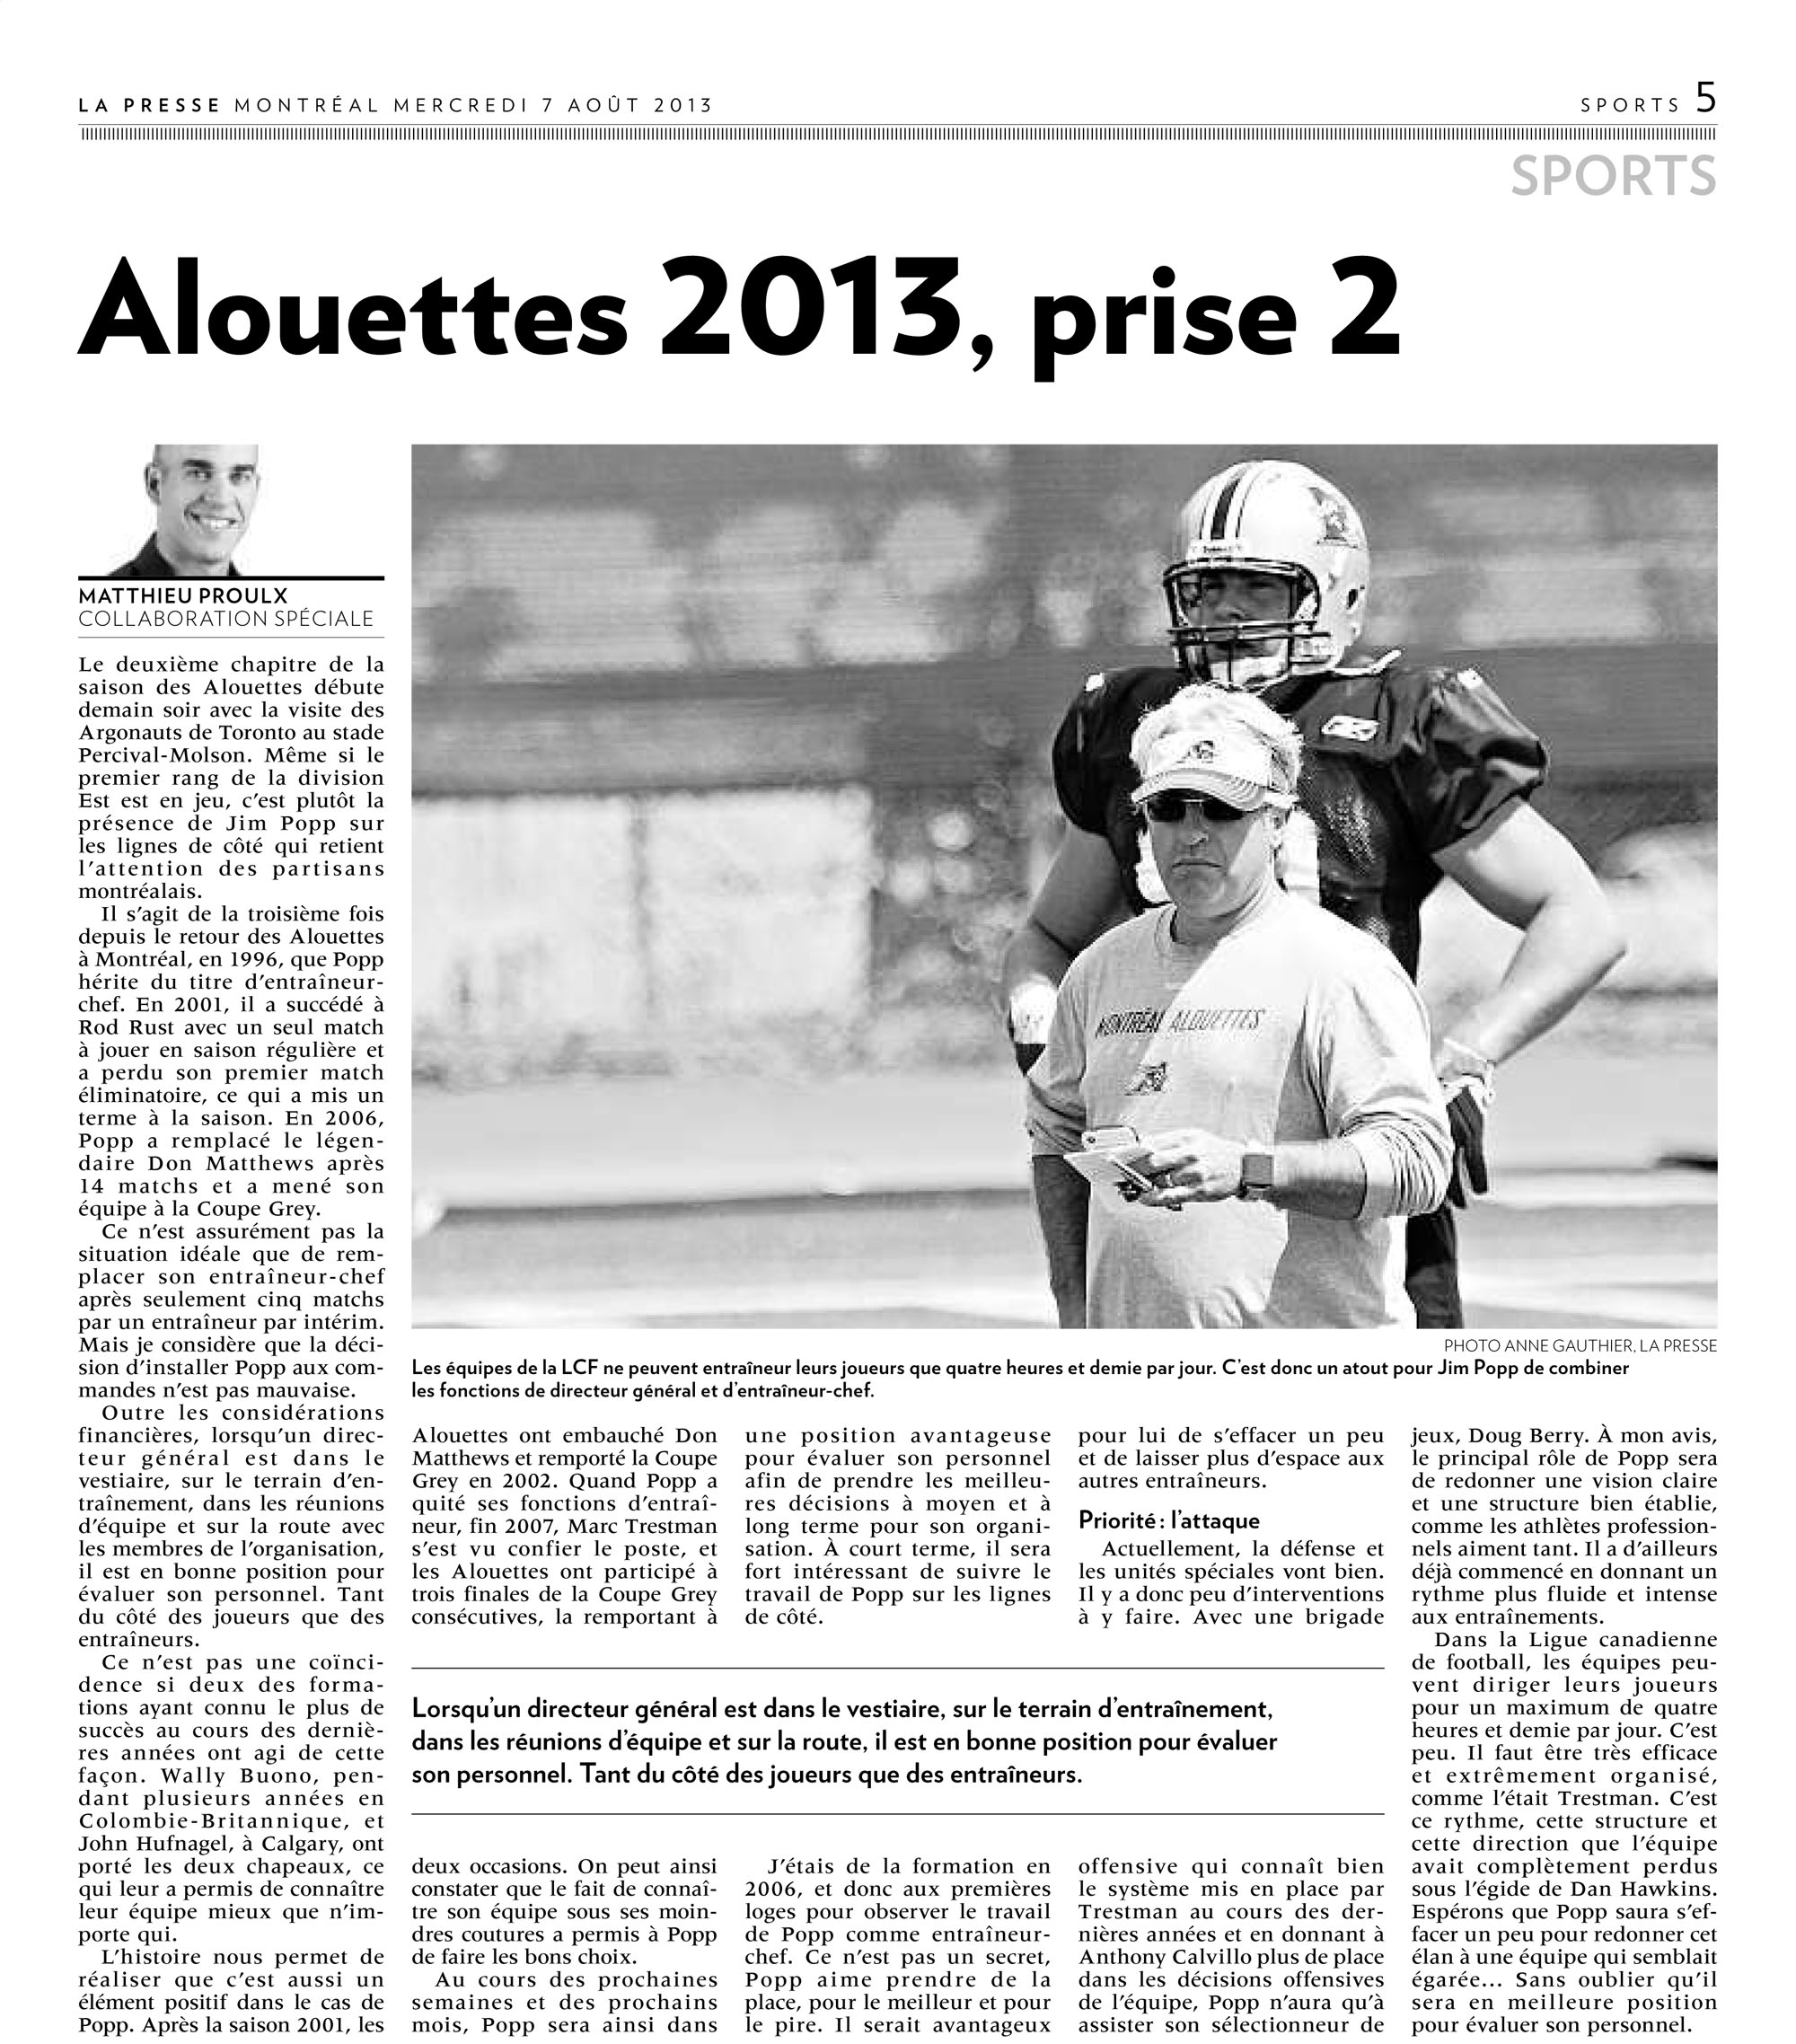 Alouettes 2013-2013-08-07 LA PRESSE Photo Anne Gauthier